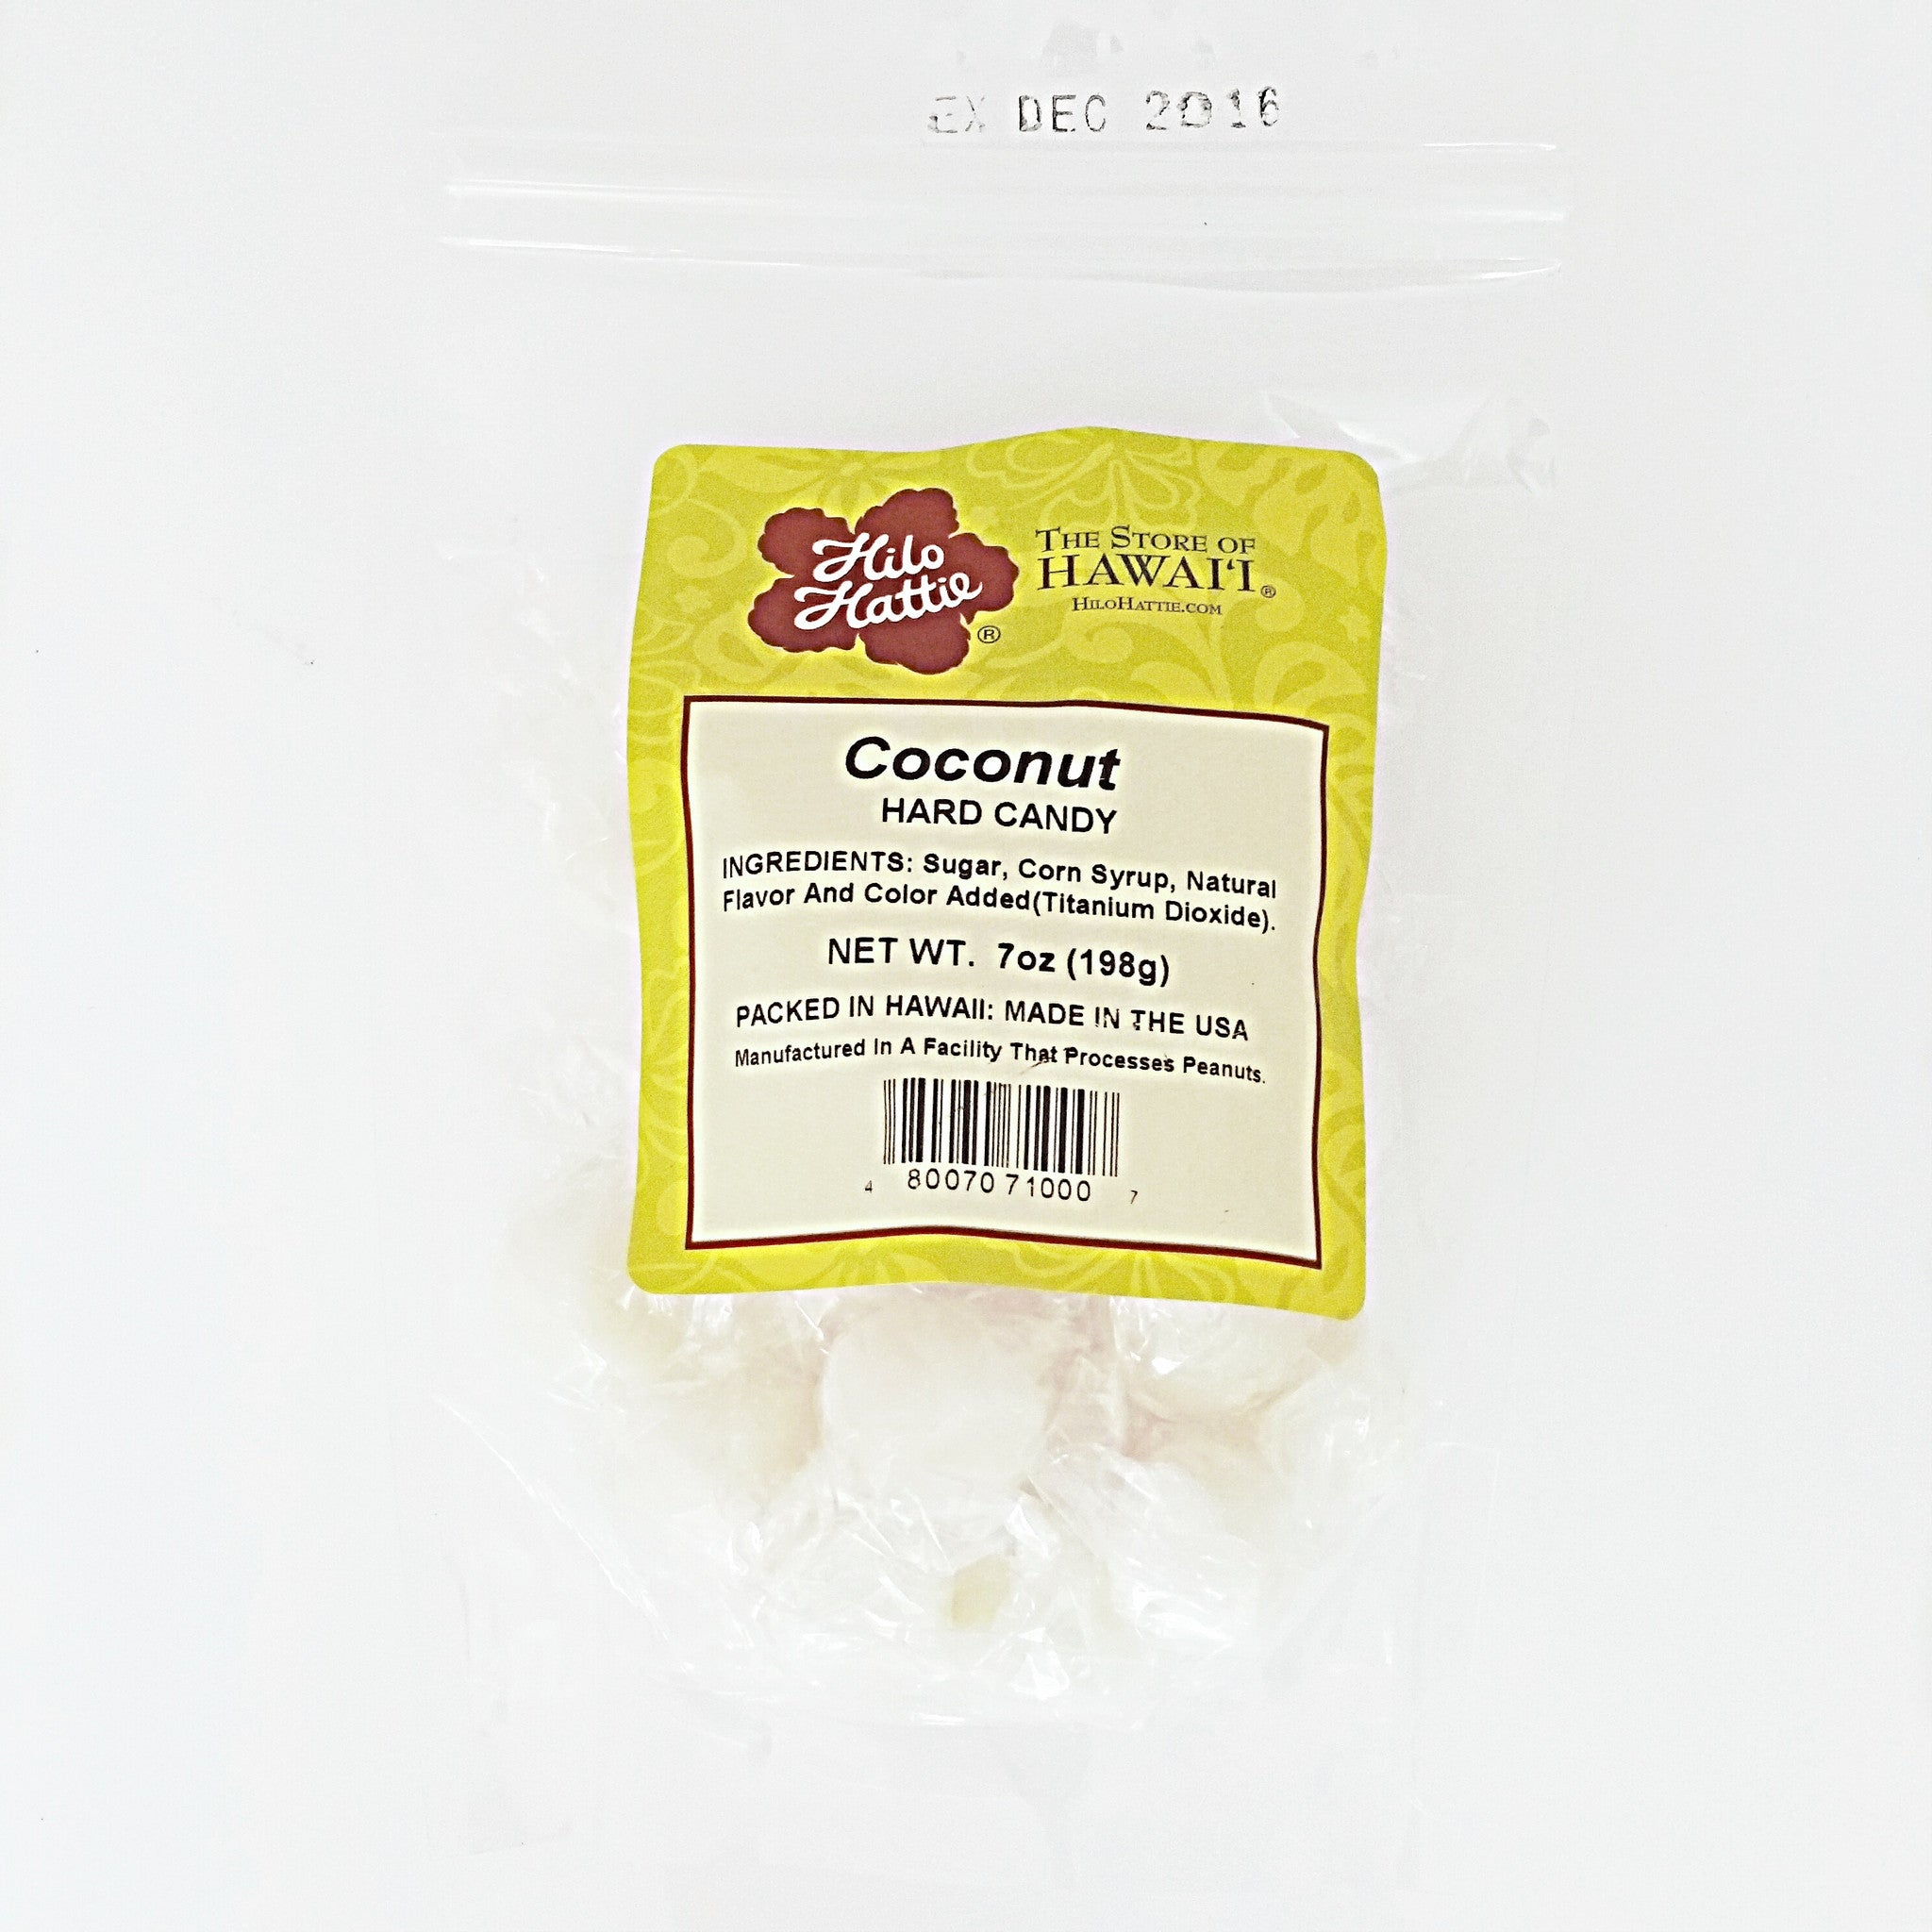 Hilo Hattie Coconut Hard Candy 7oz